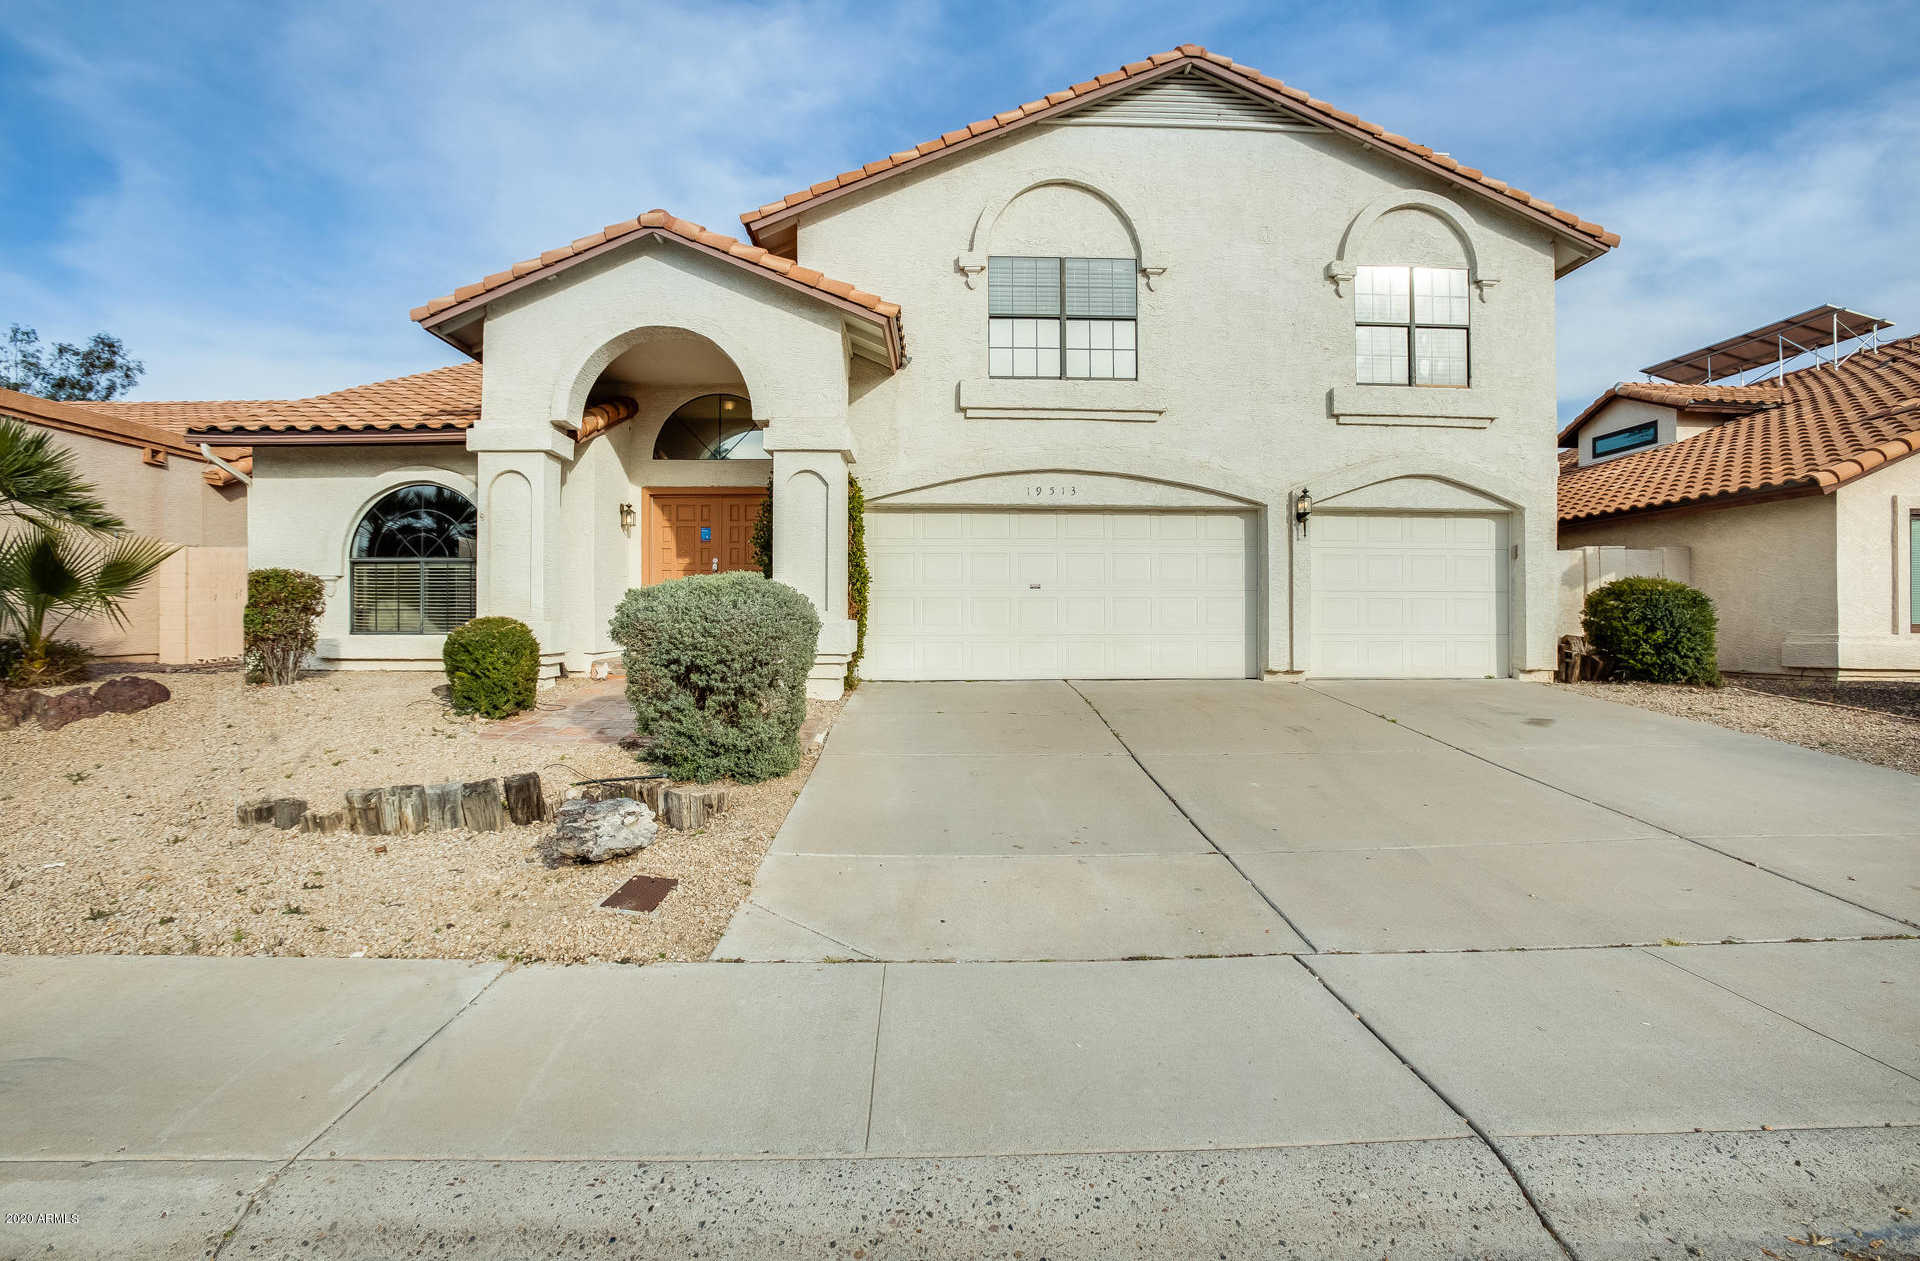 $389,900 - 4Br/3Ba - Home for Sale in Arrowhead By The Lakes Lot 1-203, Glendale